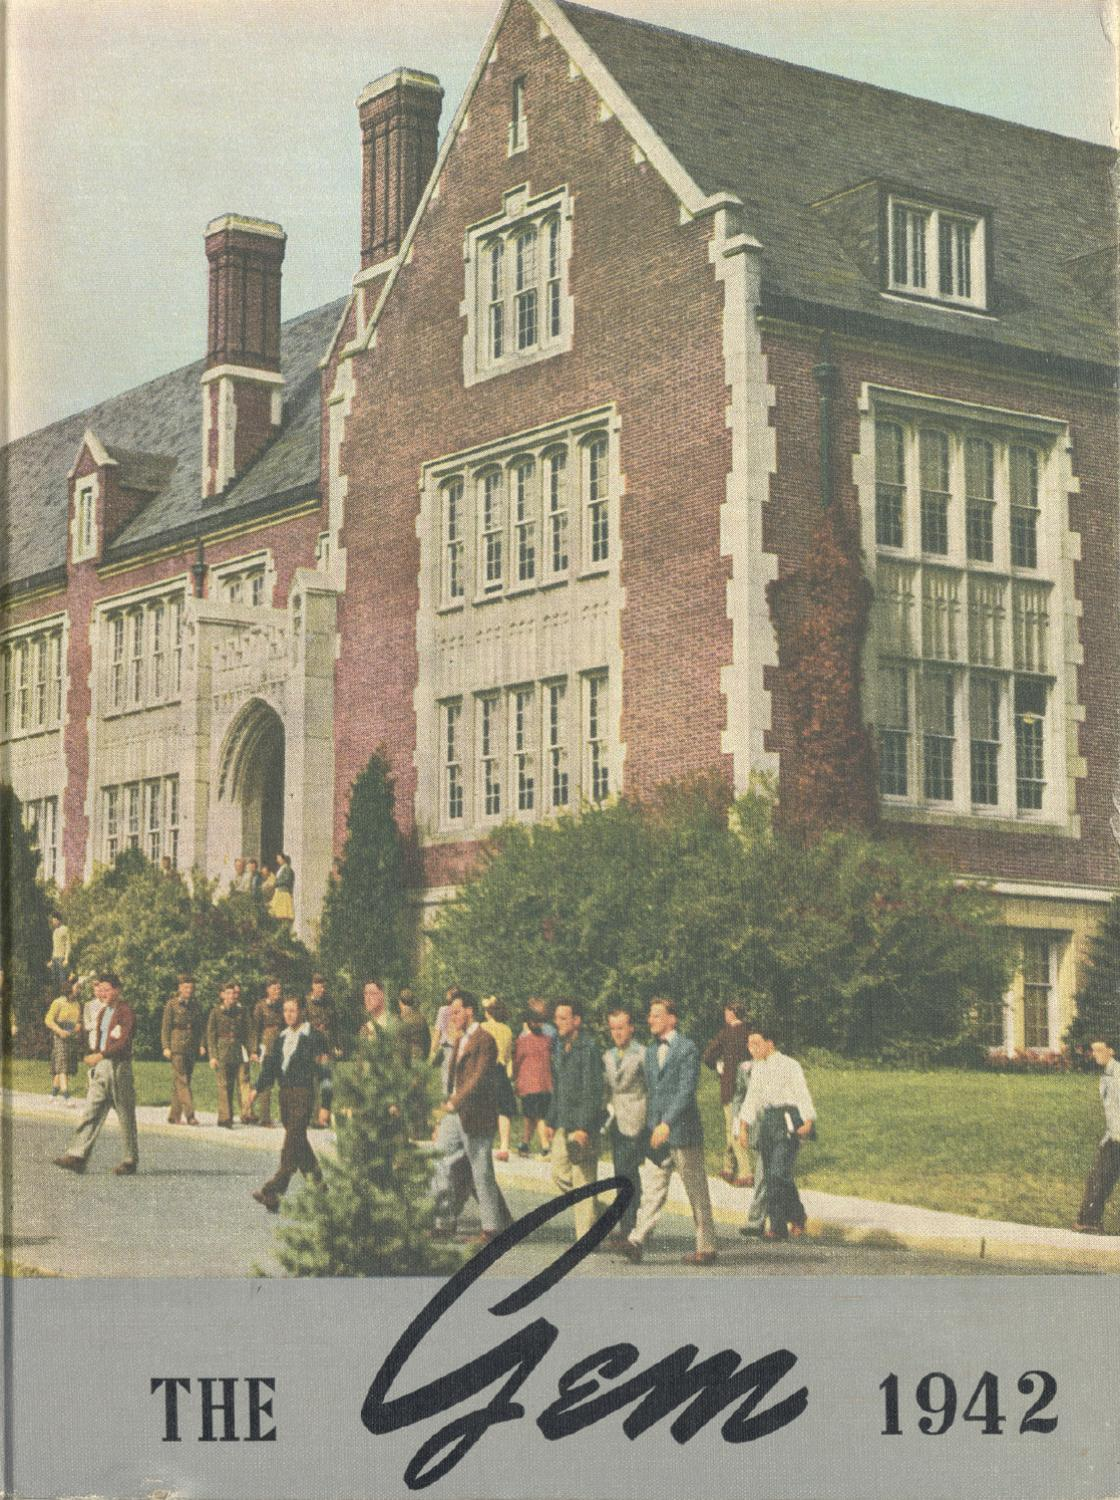 1942 Gem of the Mountains, Volume 40 - University of Idaho Yearbook by  University of Idaho Library - issuu